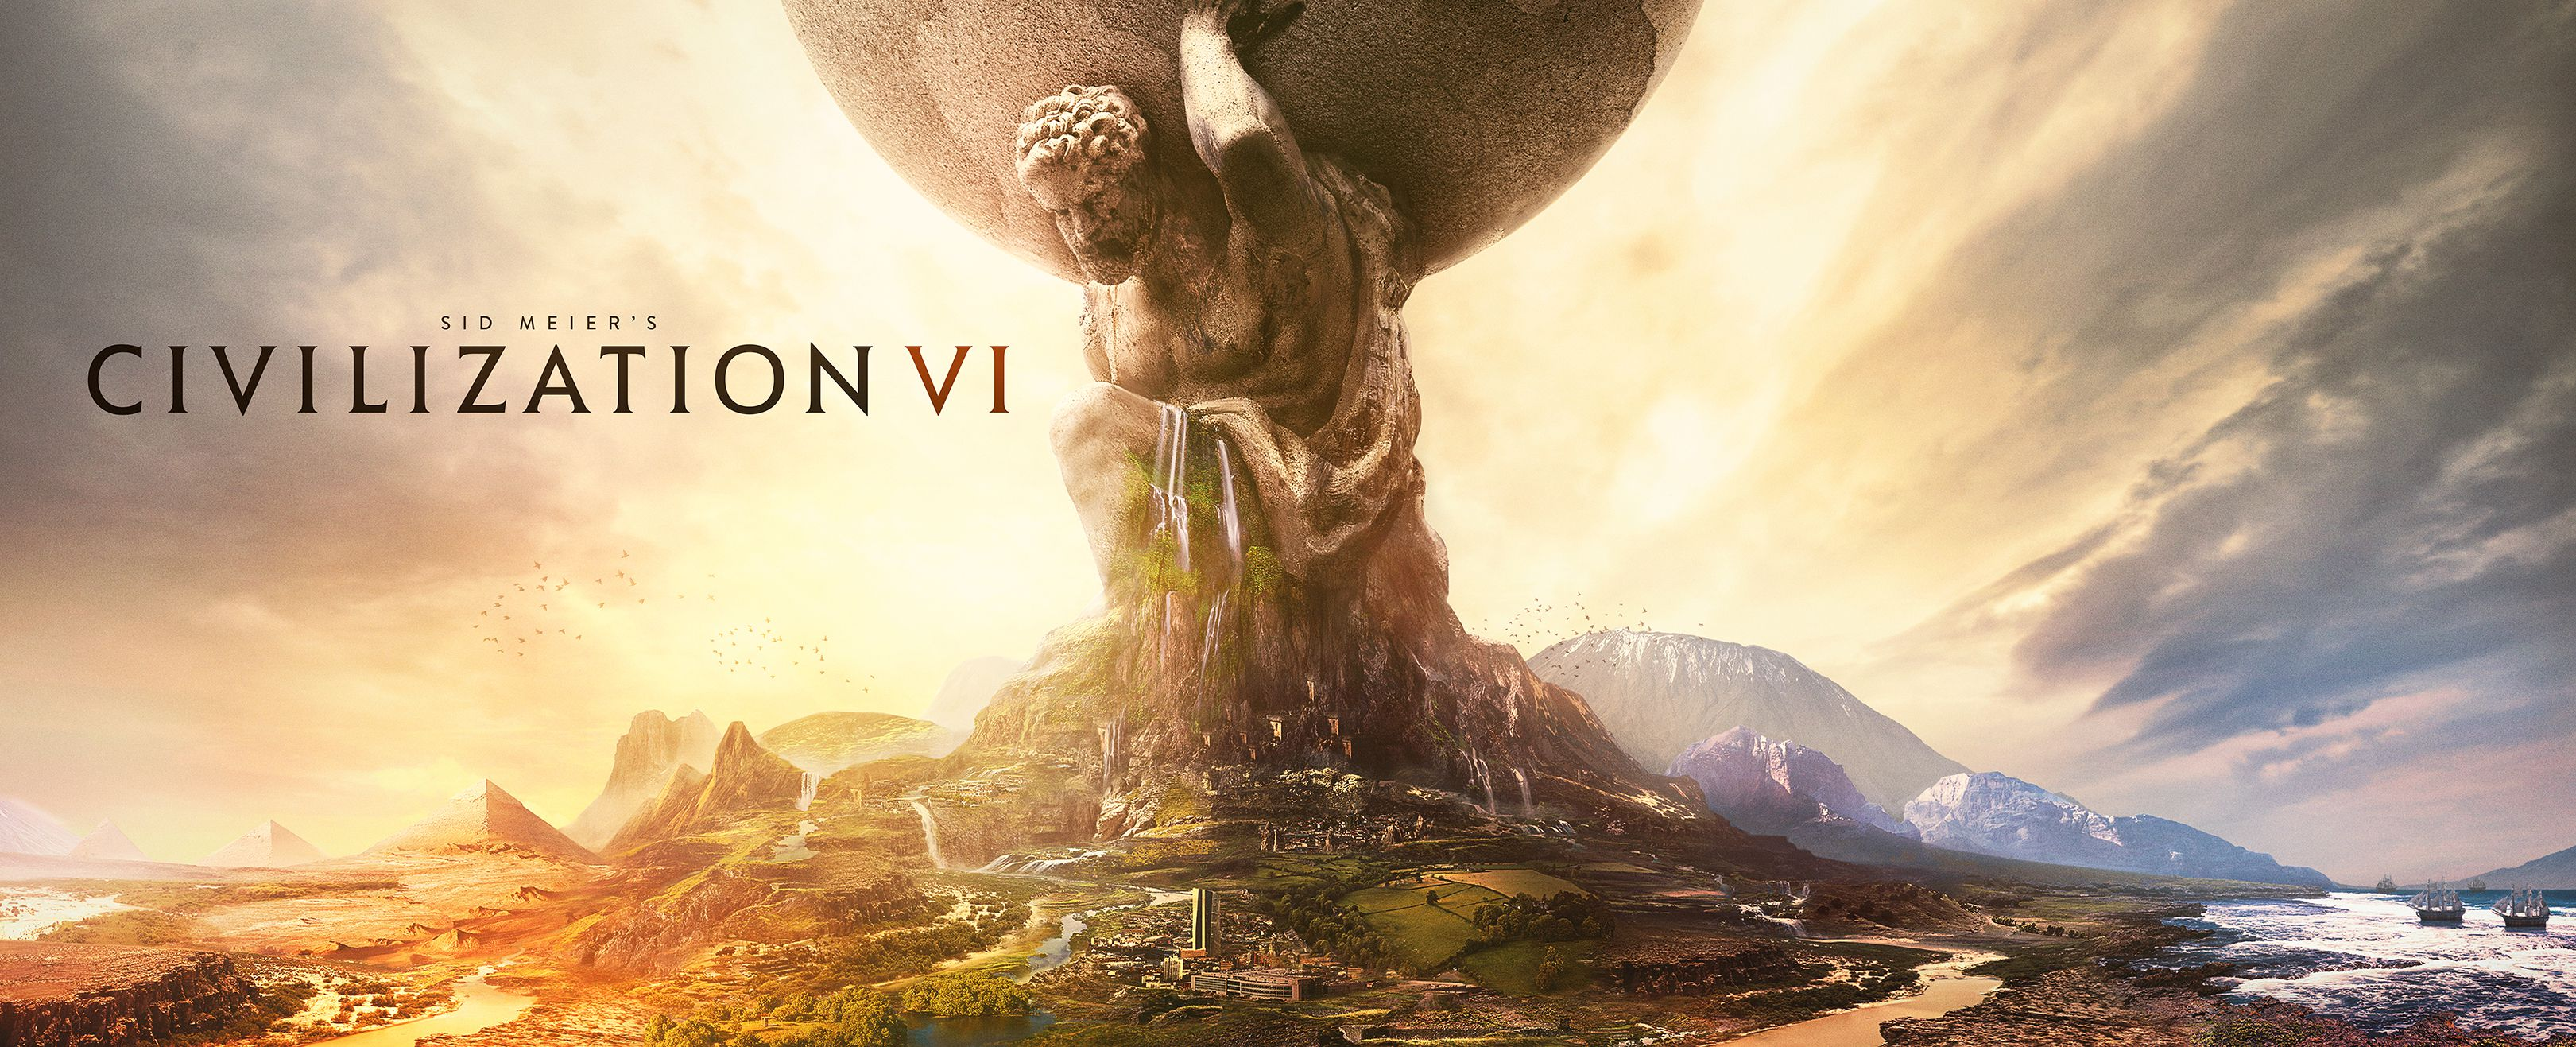 Civilization 6 release date, trailers and news: Get a first look at ...